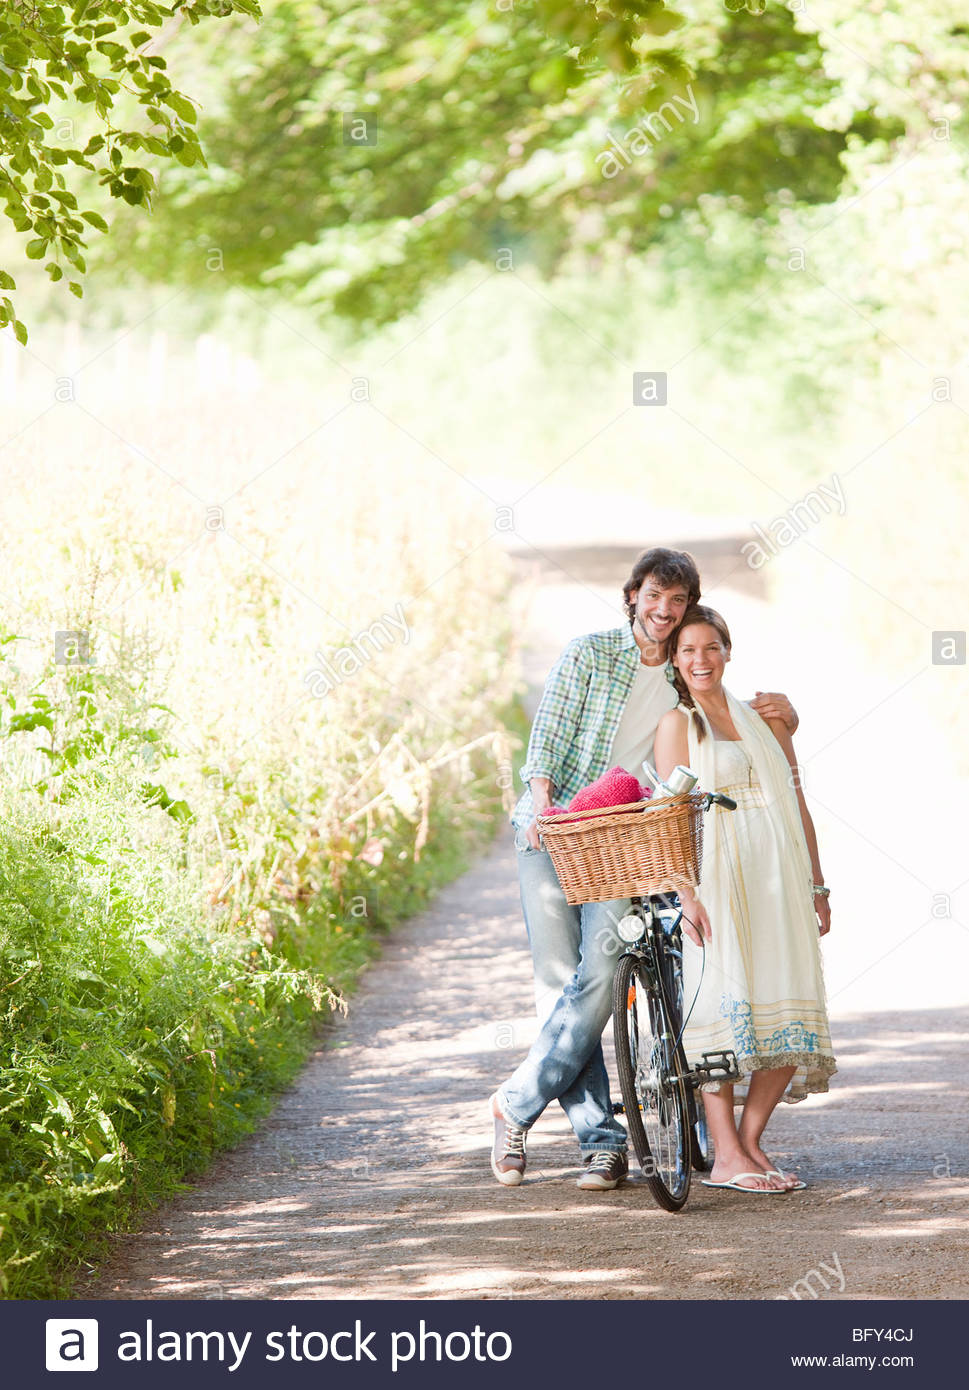 Man and woman with bike in country lane - Stock Image